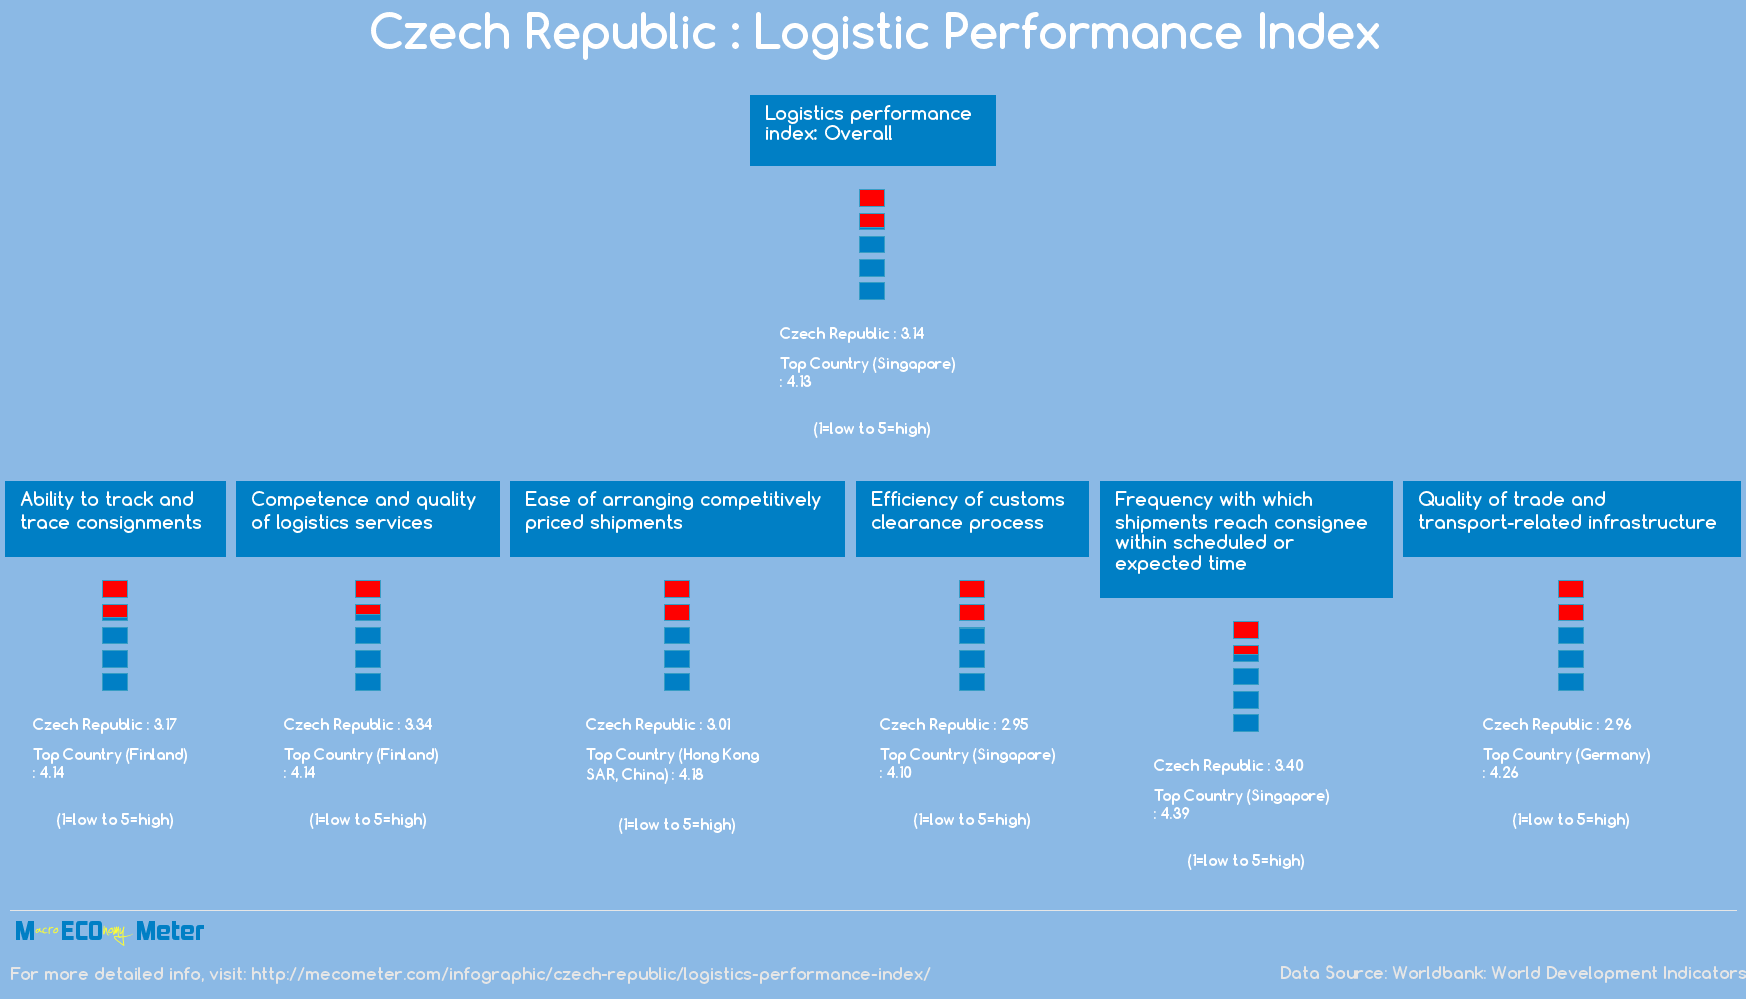 Czech Republic : Logistic Performance Index